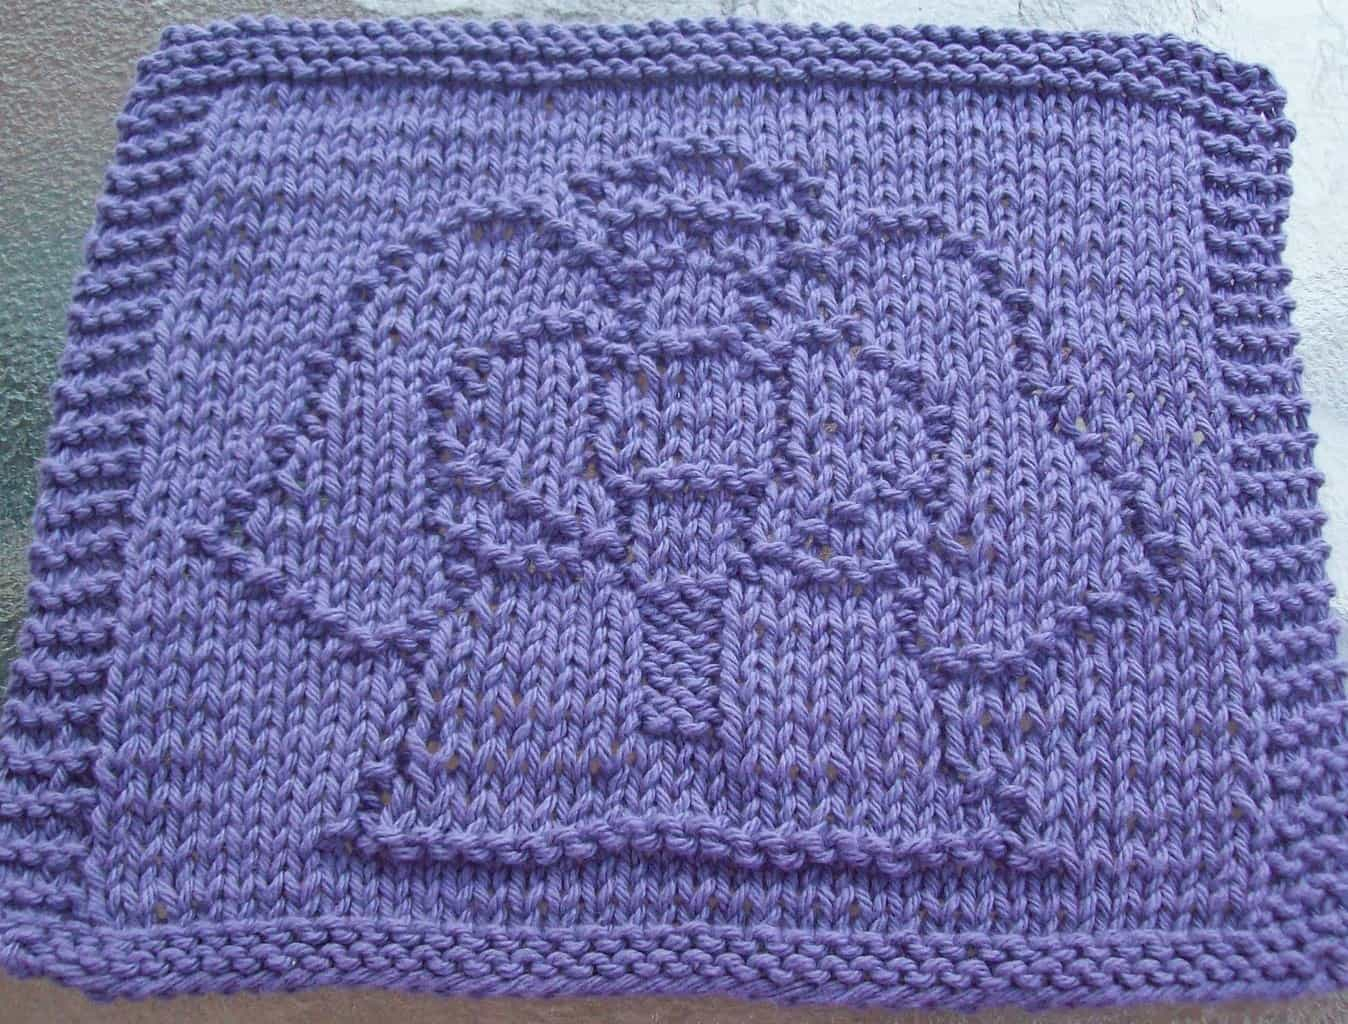 Knitted Butterfly Dishcloth Pattern Check Out These 26 Creative Dishcloth Patterns For Your Kitchen